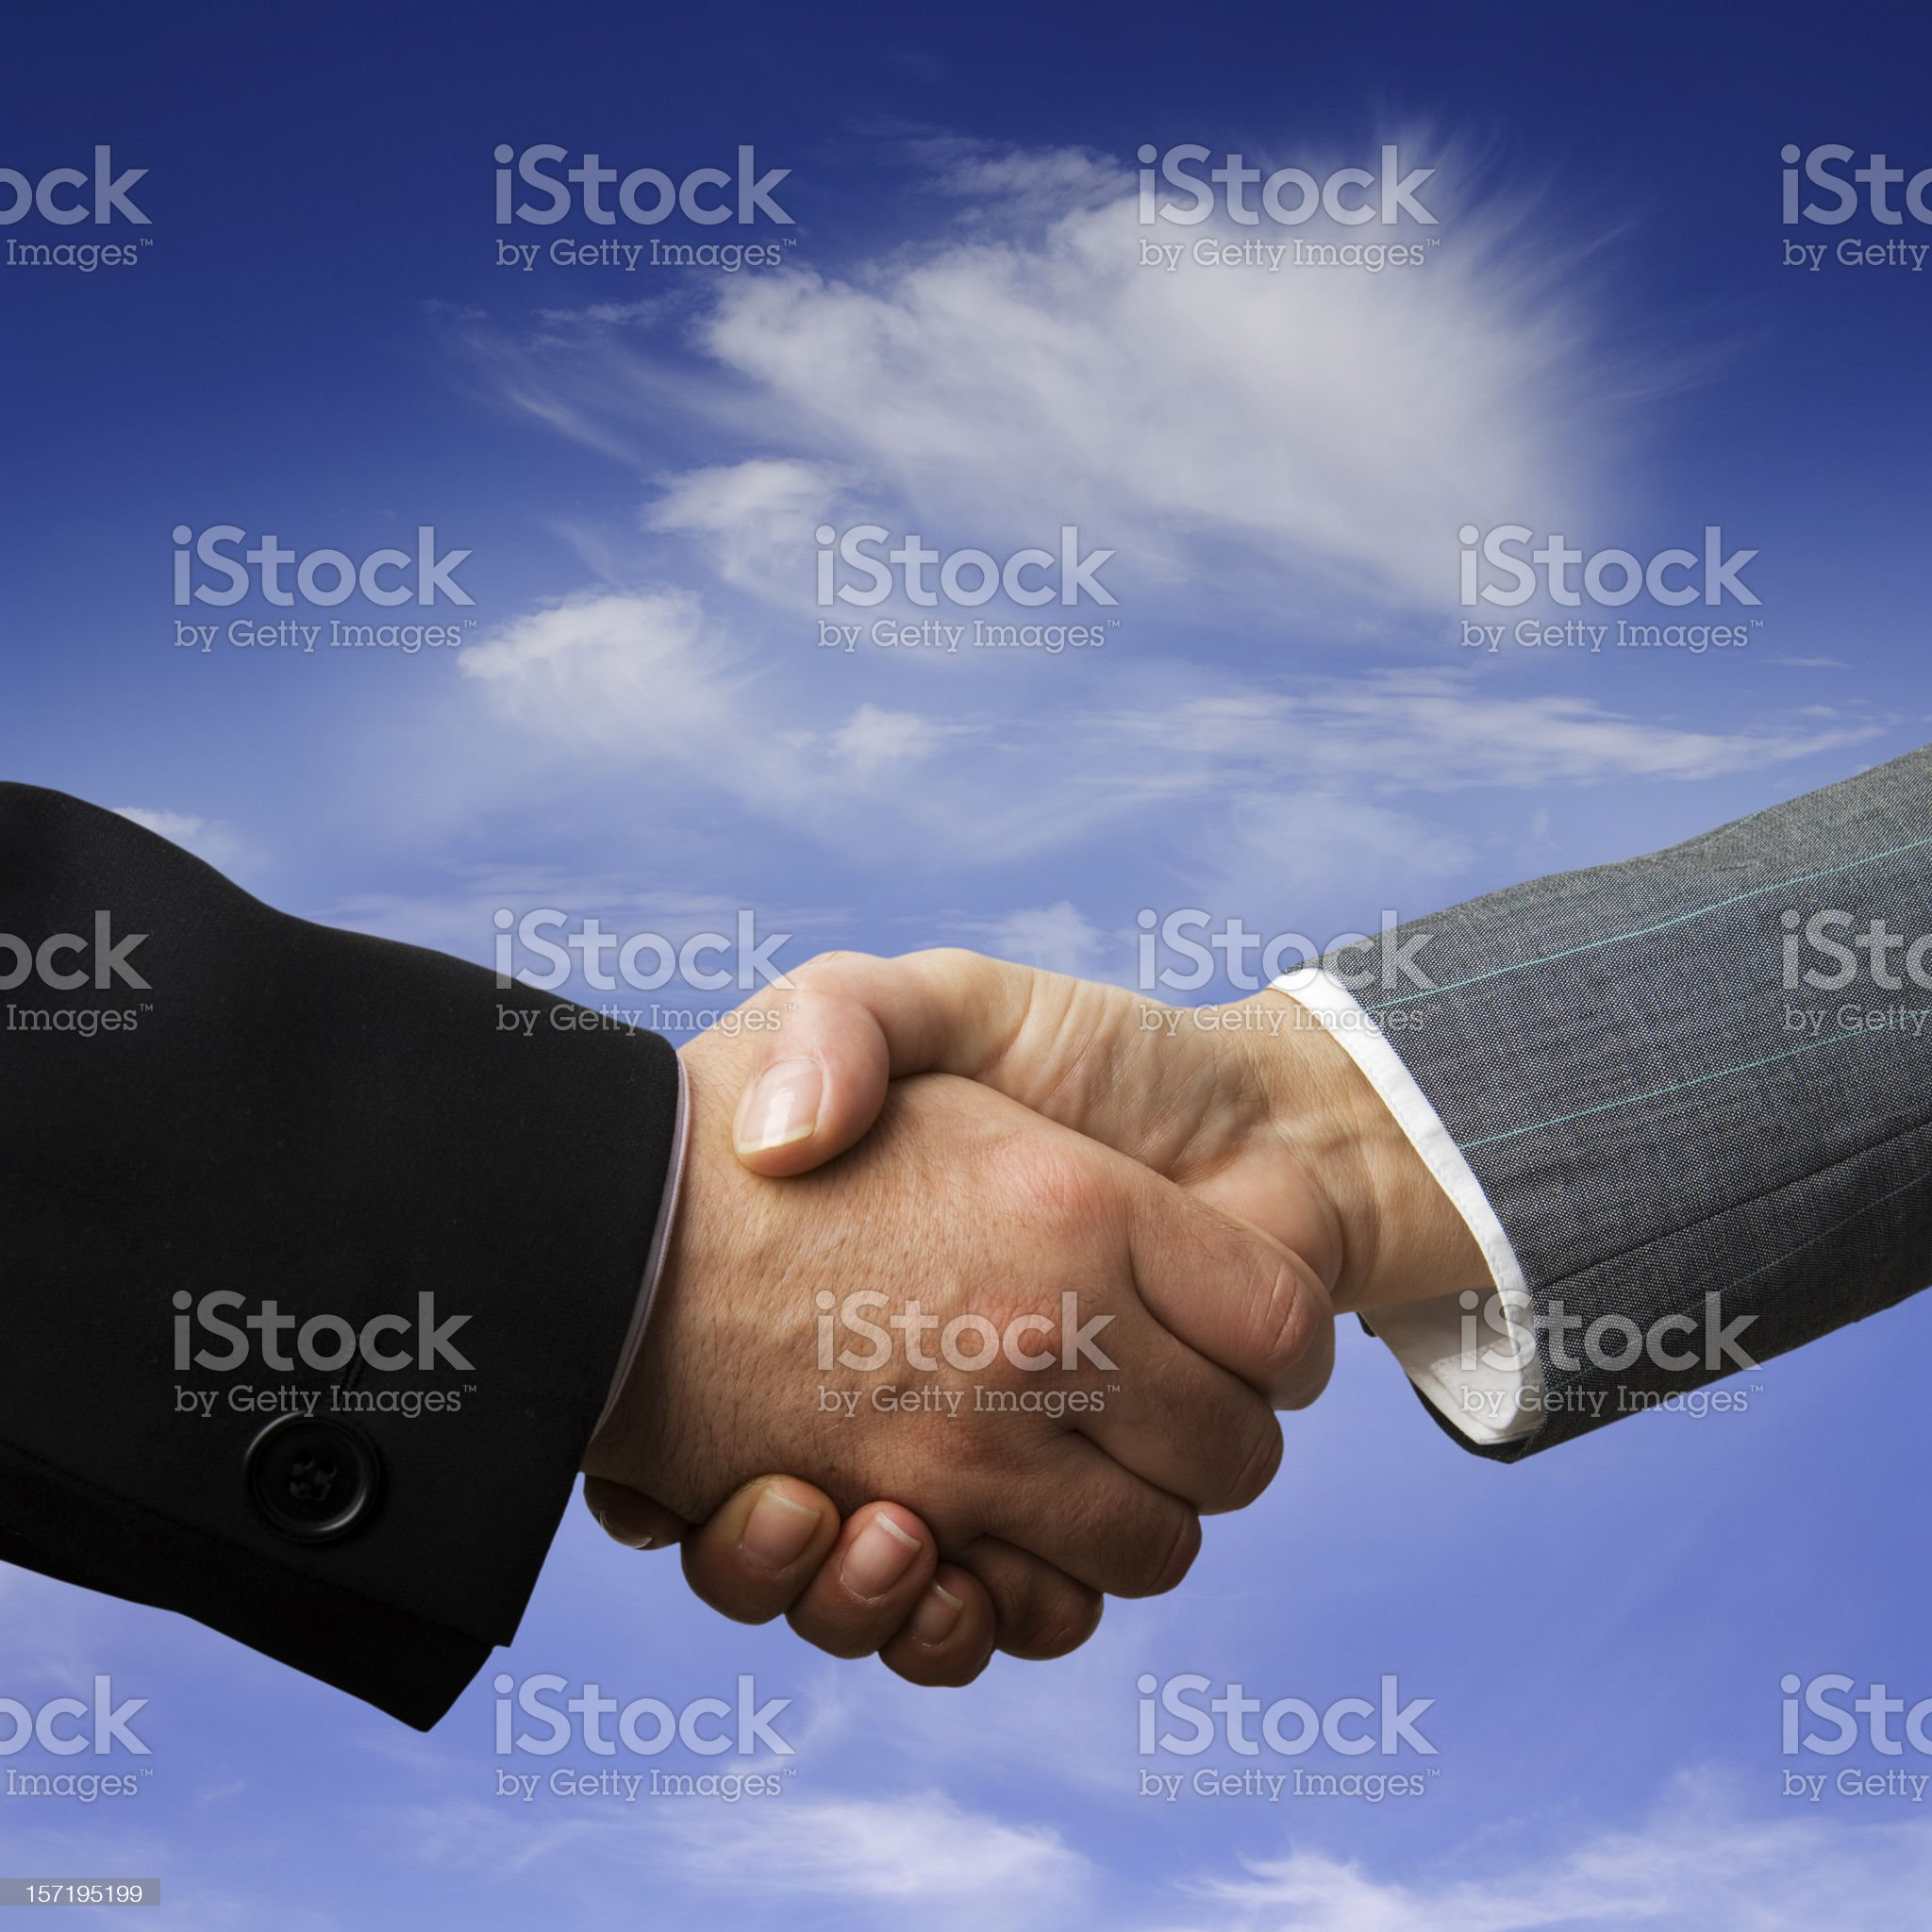 Shake on a deal royalty-free stock photo